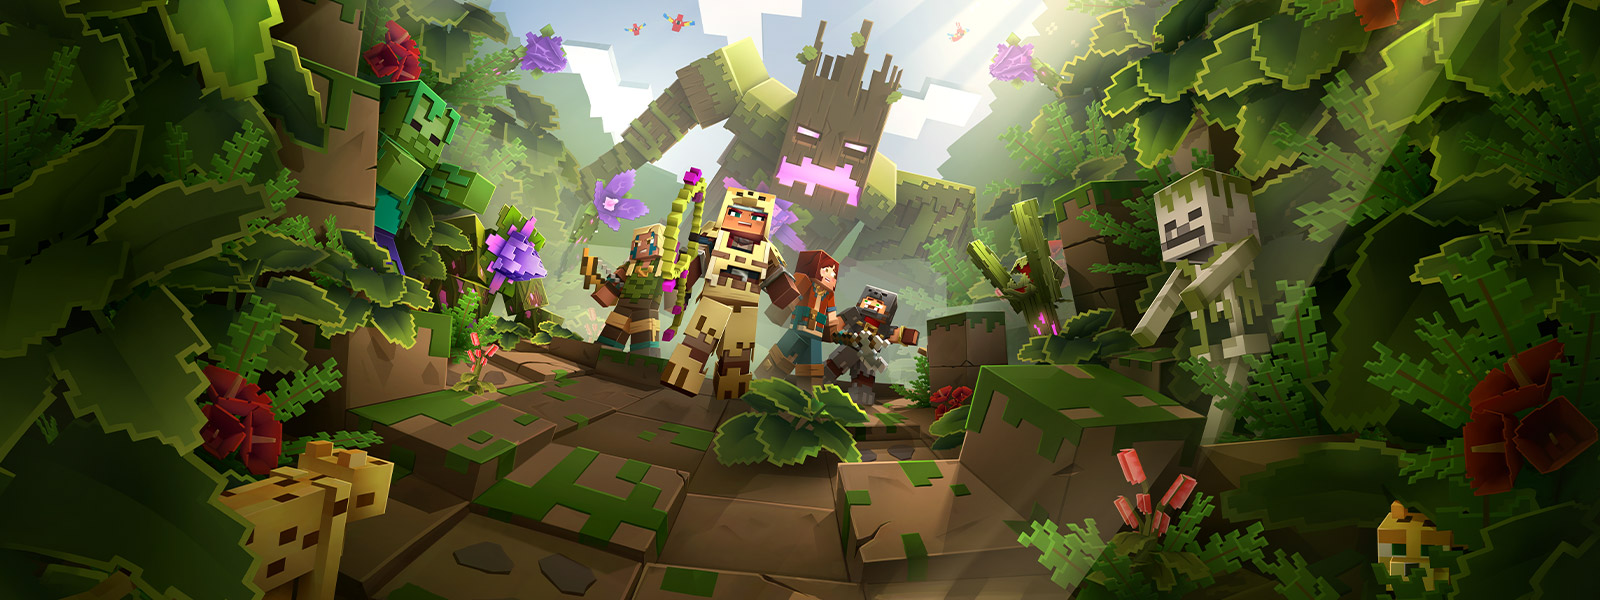 Four Minecraft Dungeons characters in the jungle with a large tree monster behind them